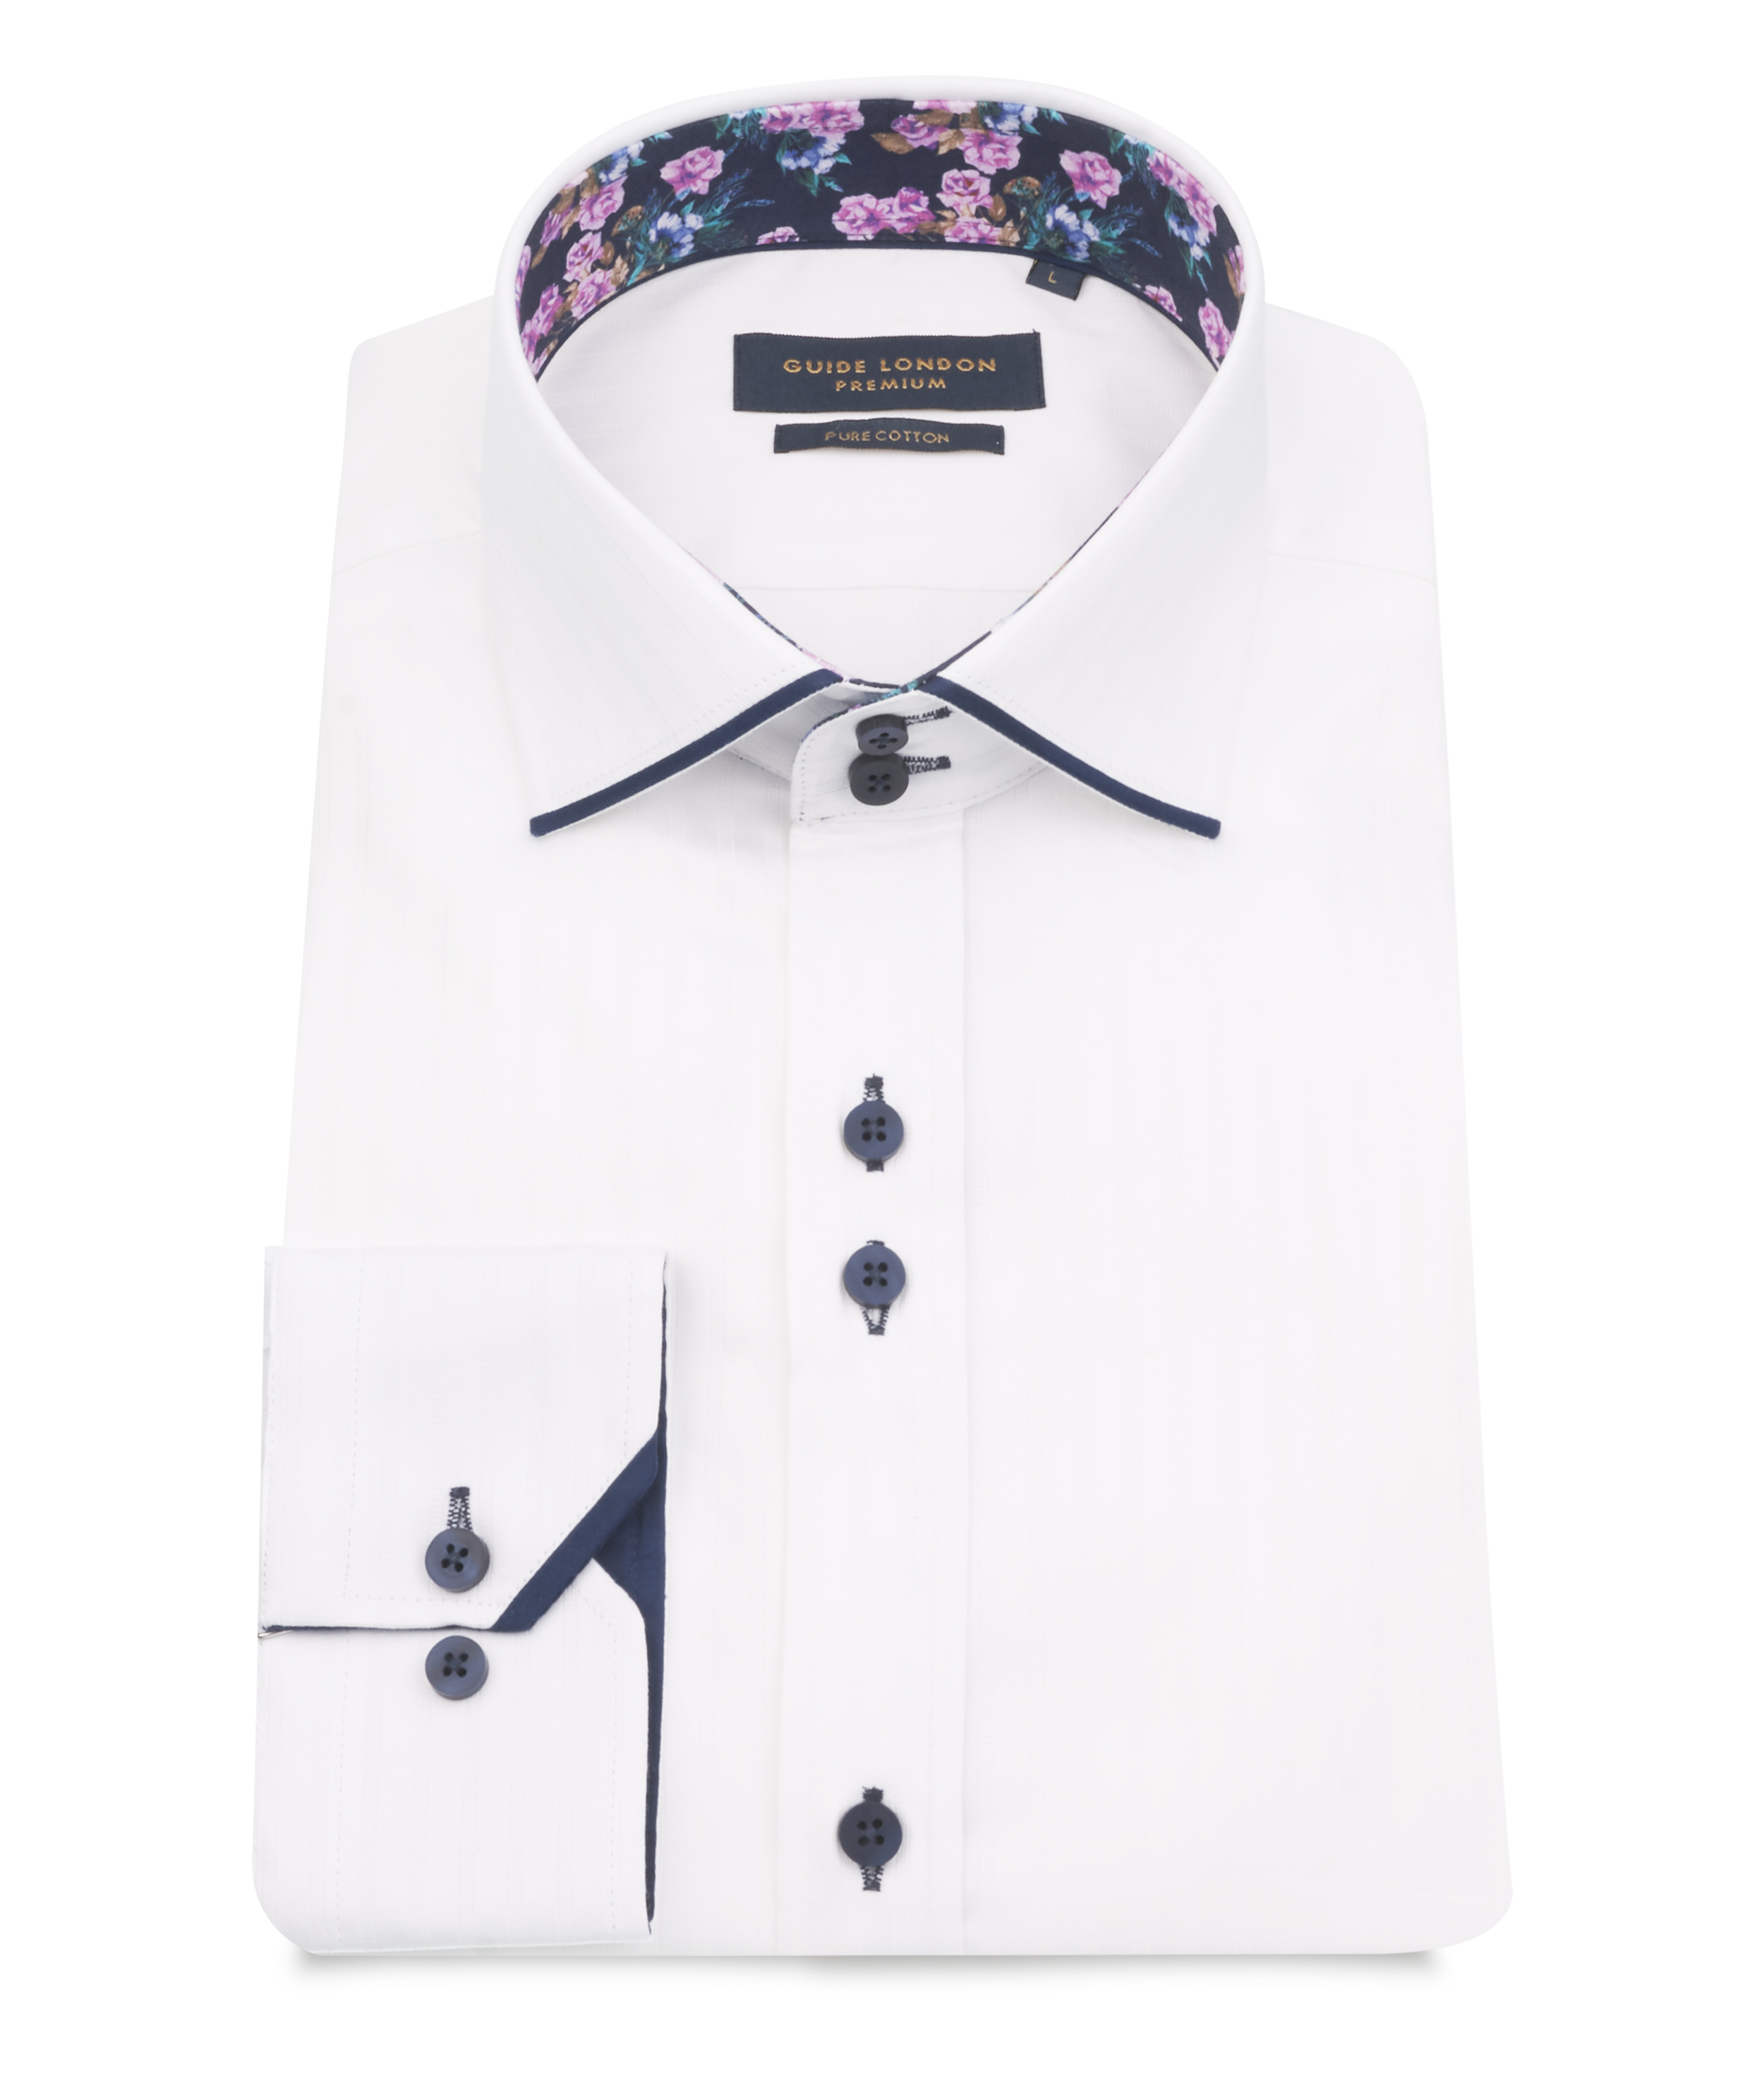 Guide London - LS75126 Shirt - White